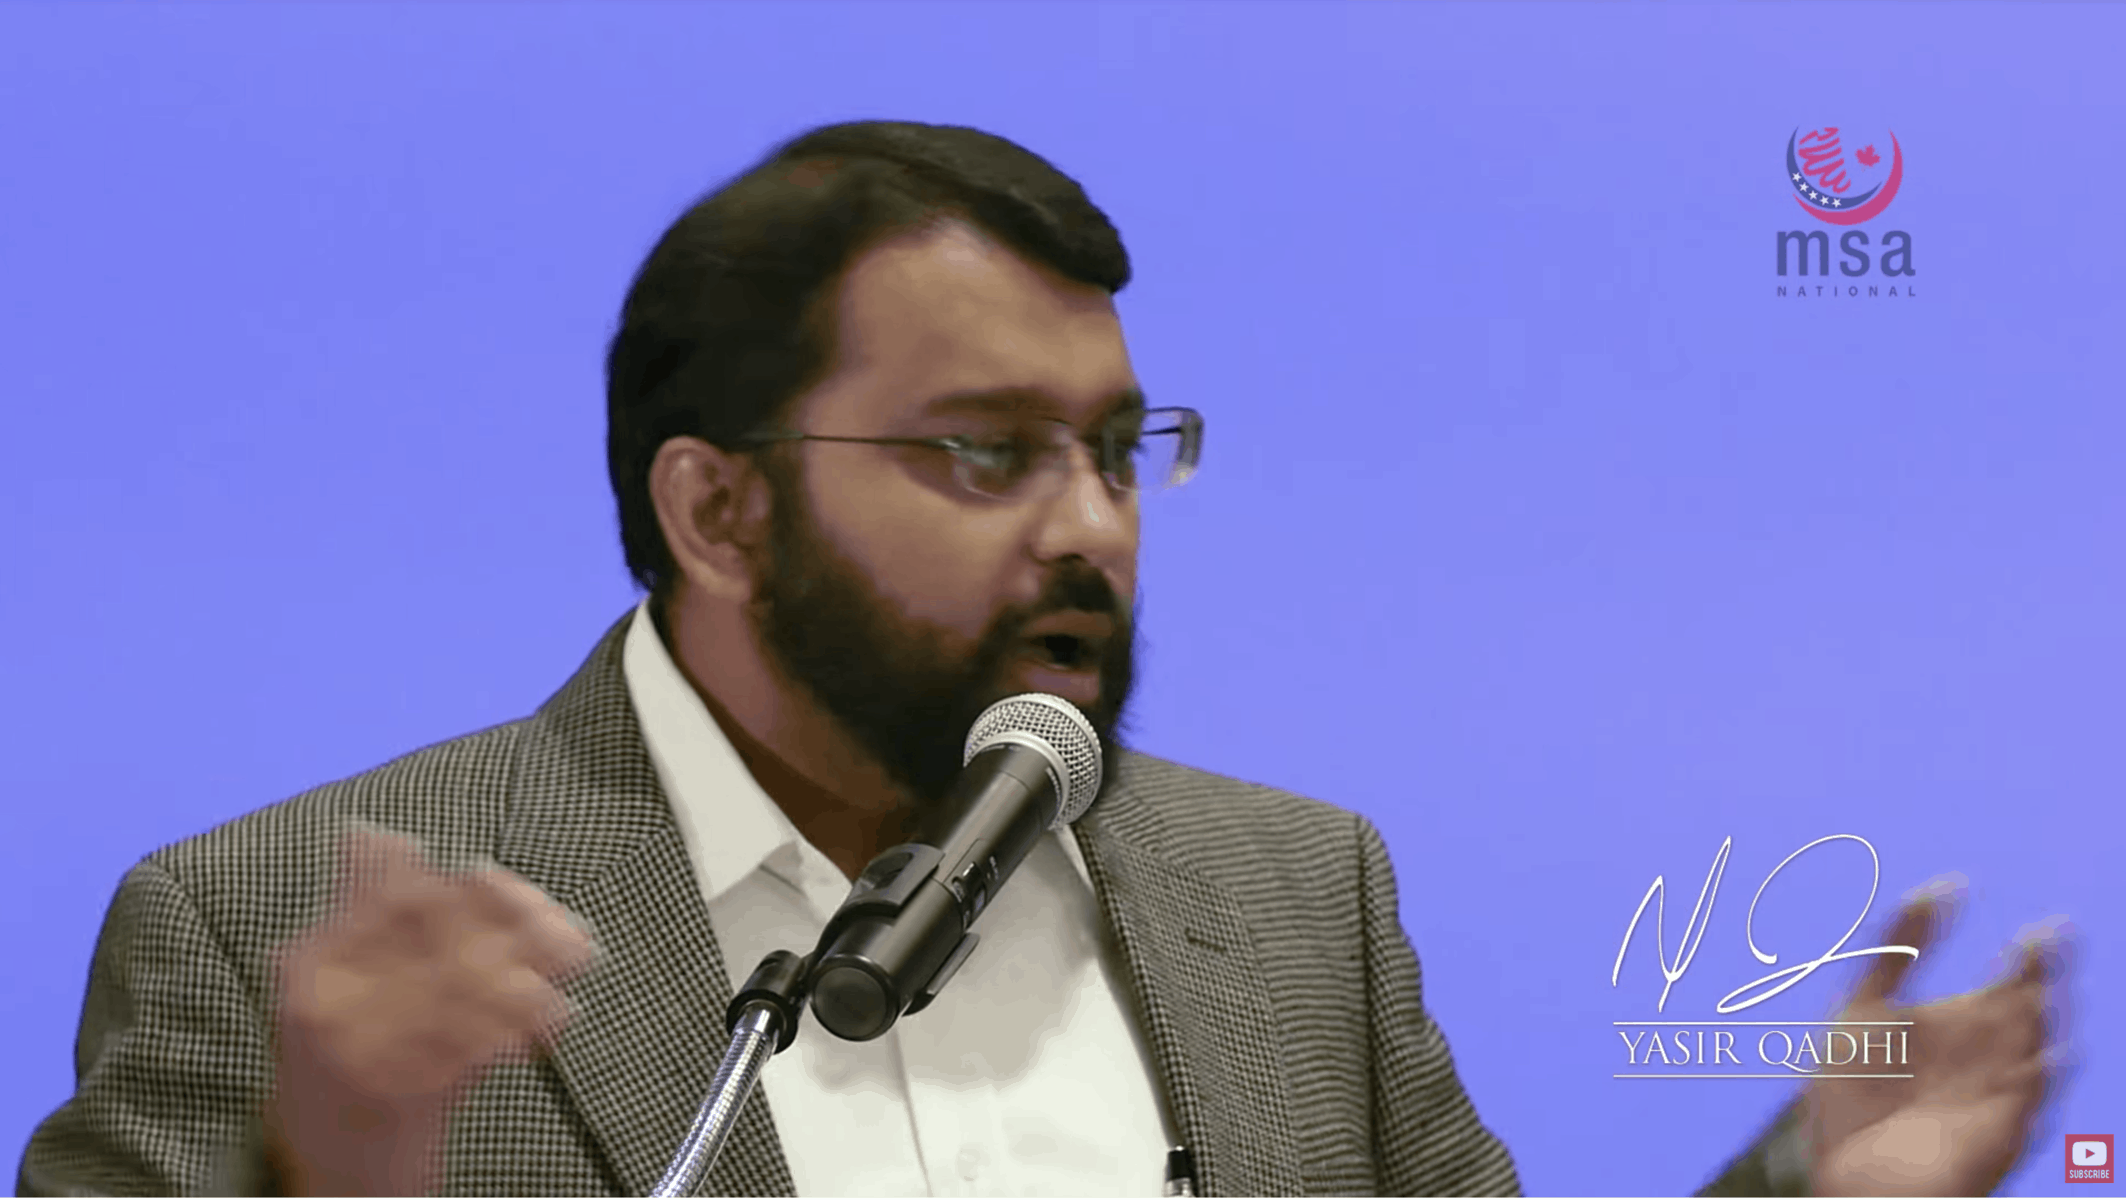 Yasir Qadhi – Our Time Our Challenges: Ultra Conservative Vs. Ultra Liberalism